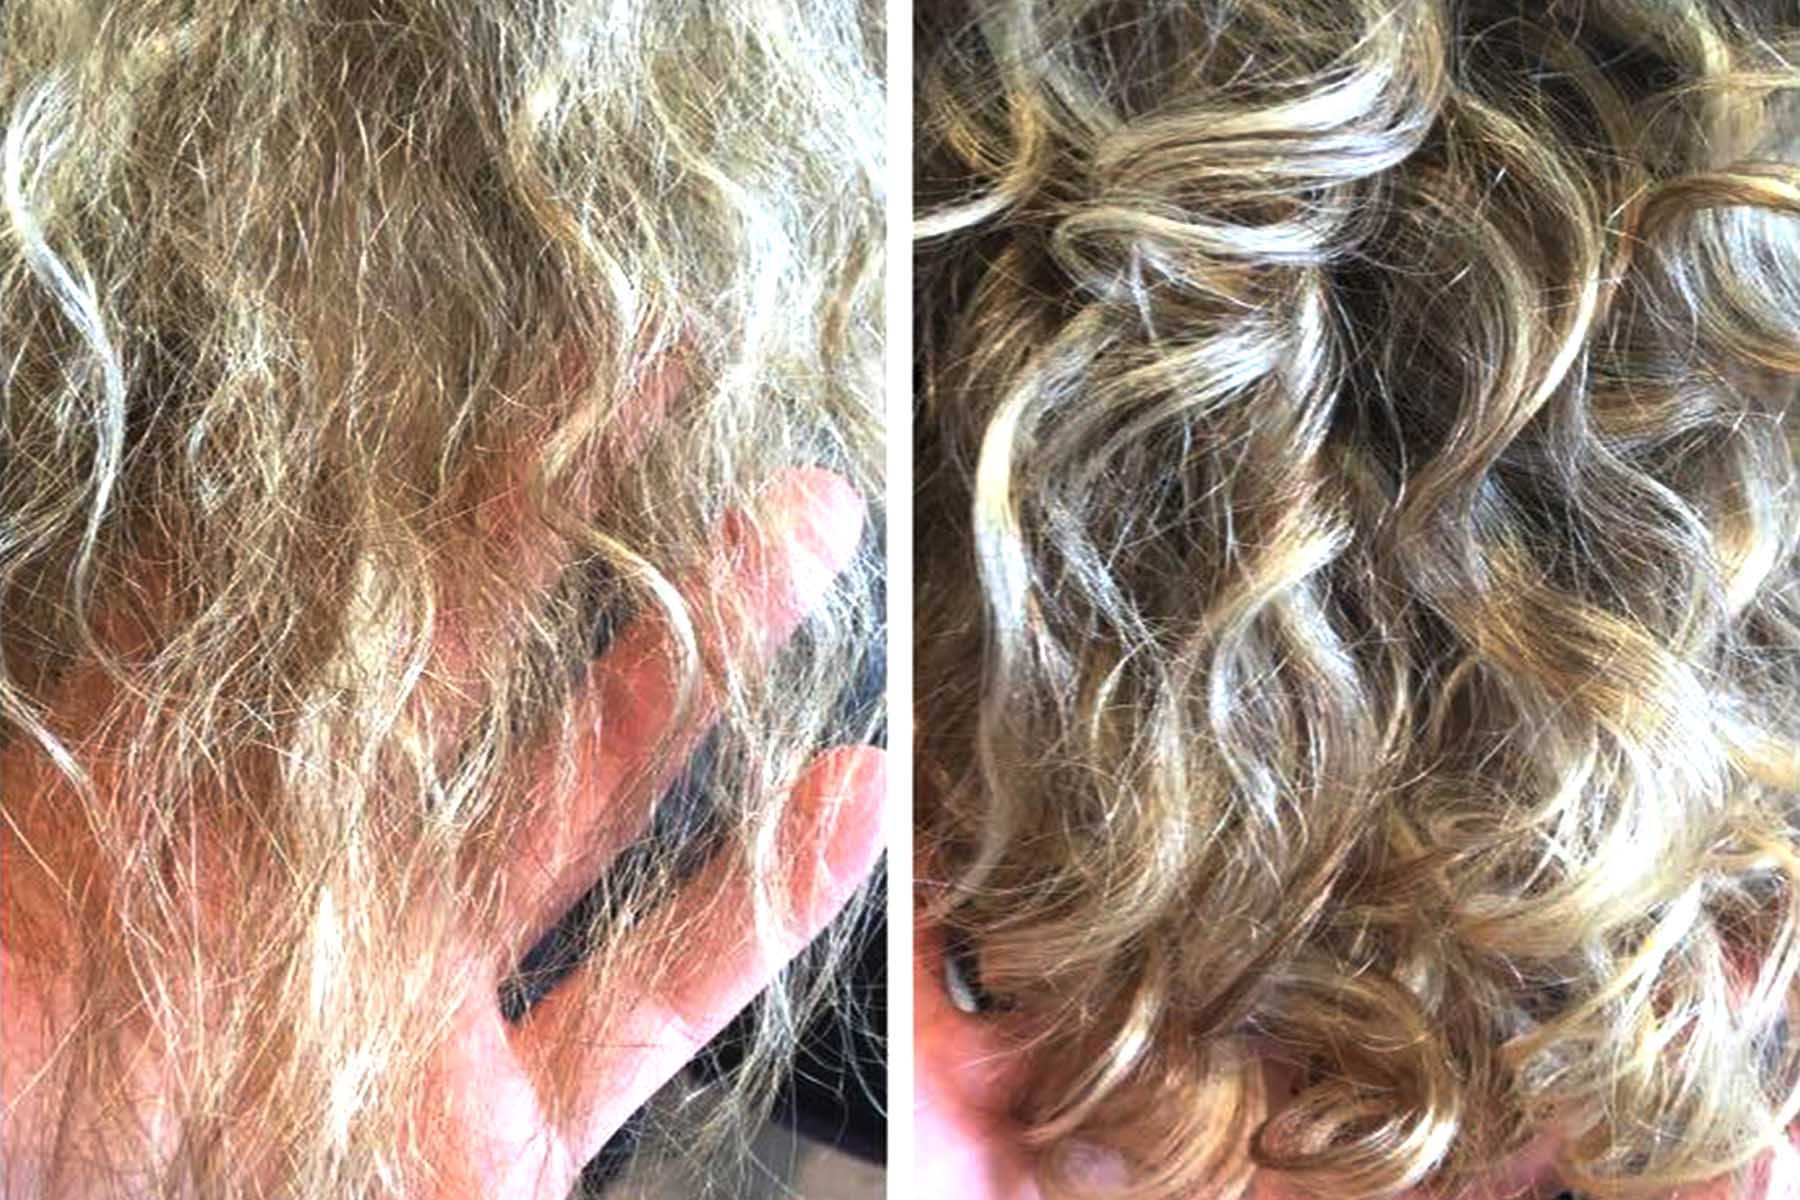 Do Perms Damage Hair Perm Damaged Hair Long Hair Waves Types Of Perms